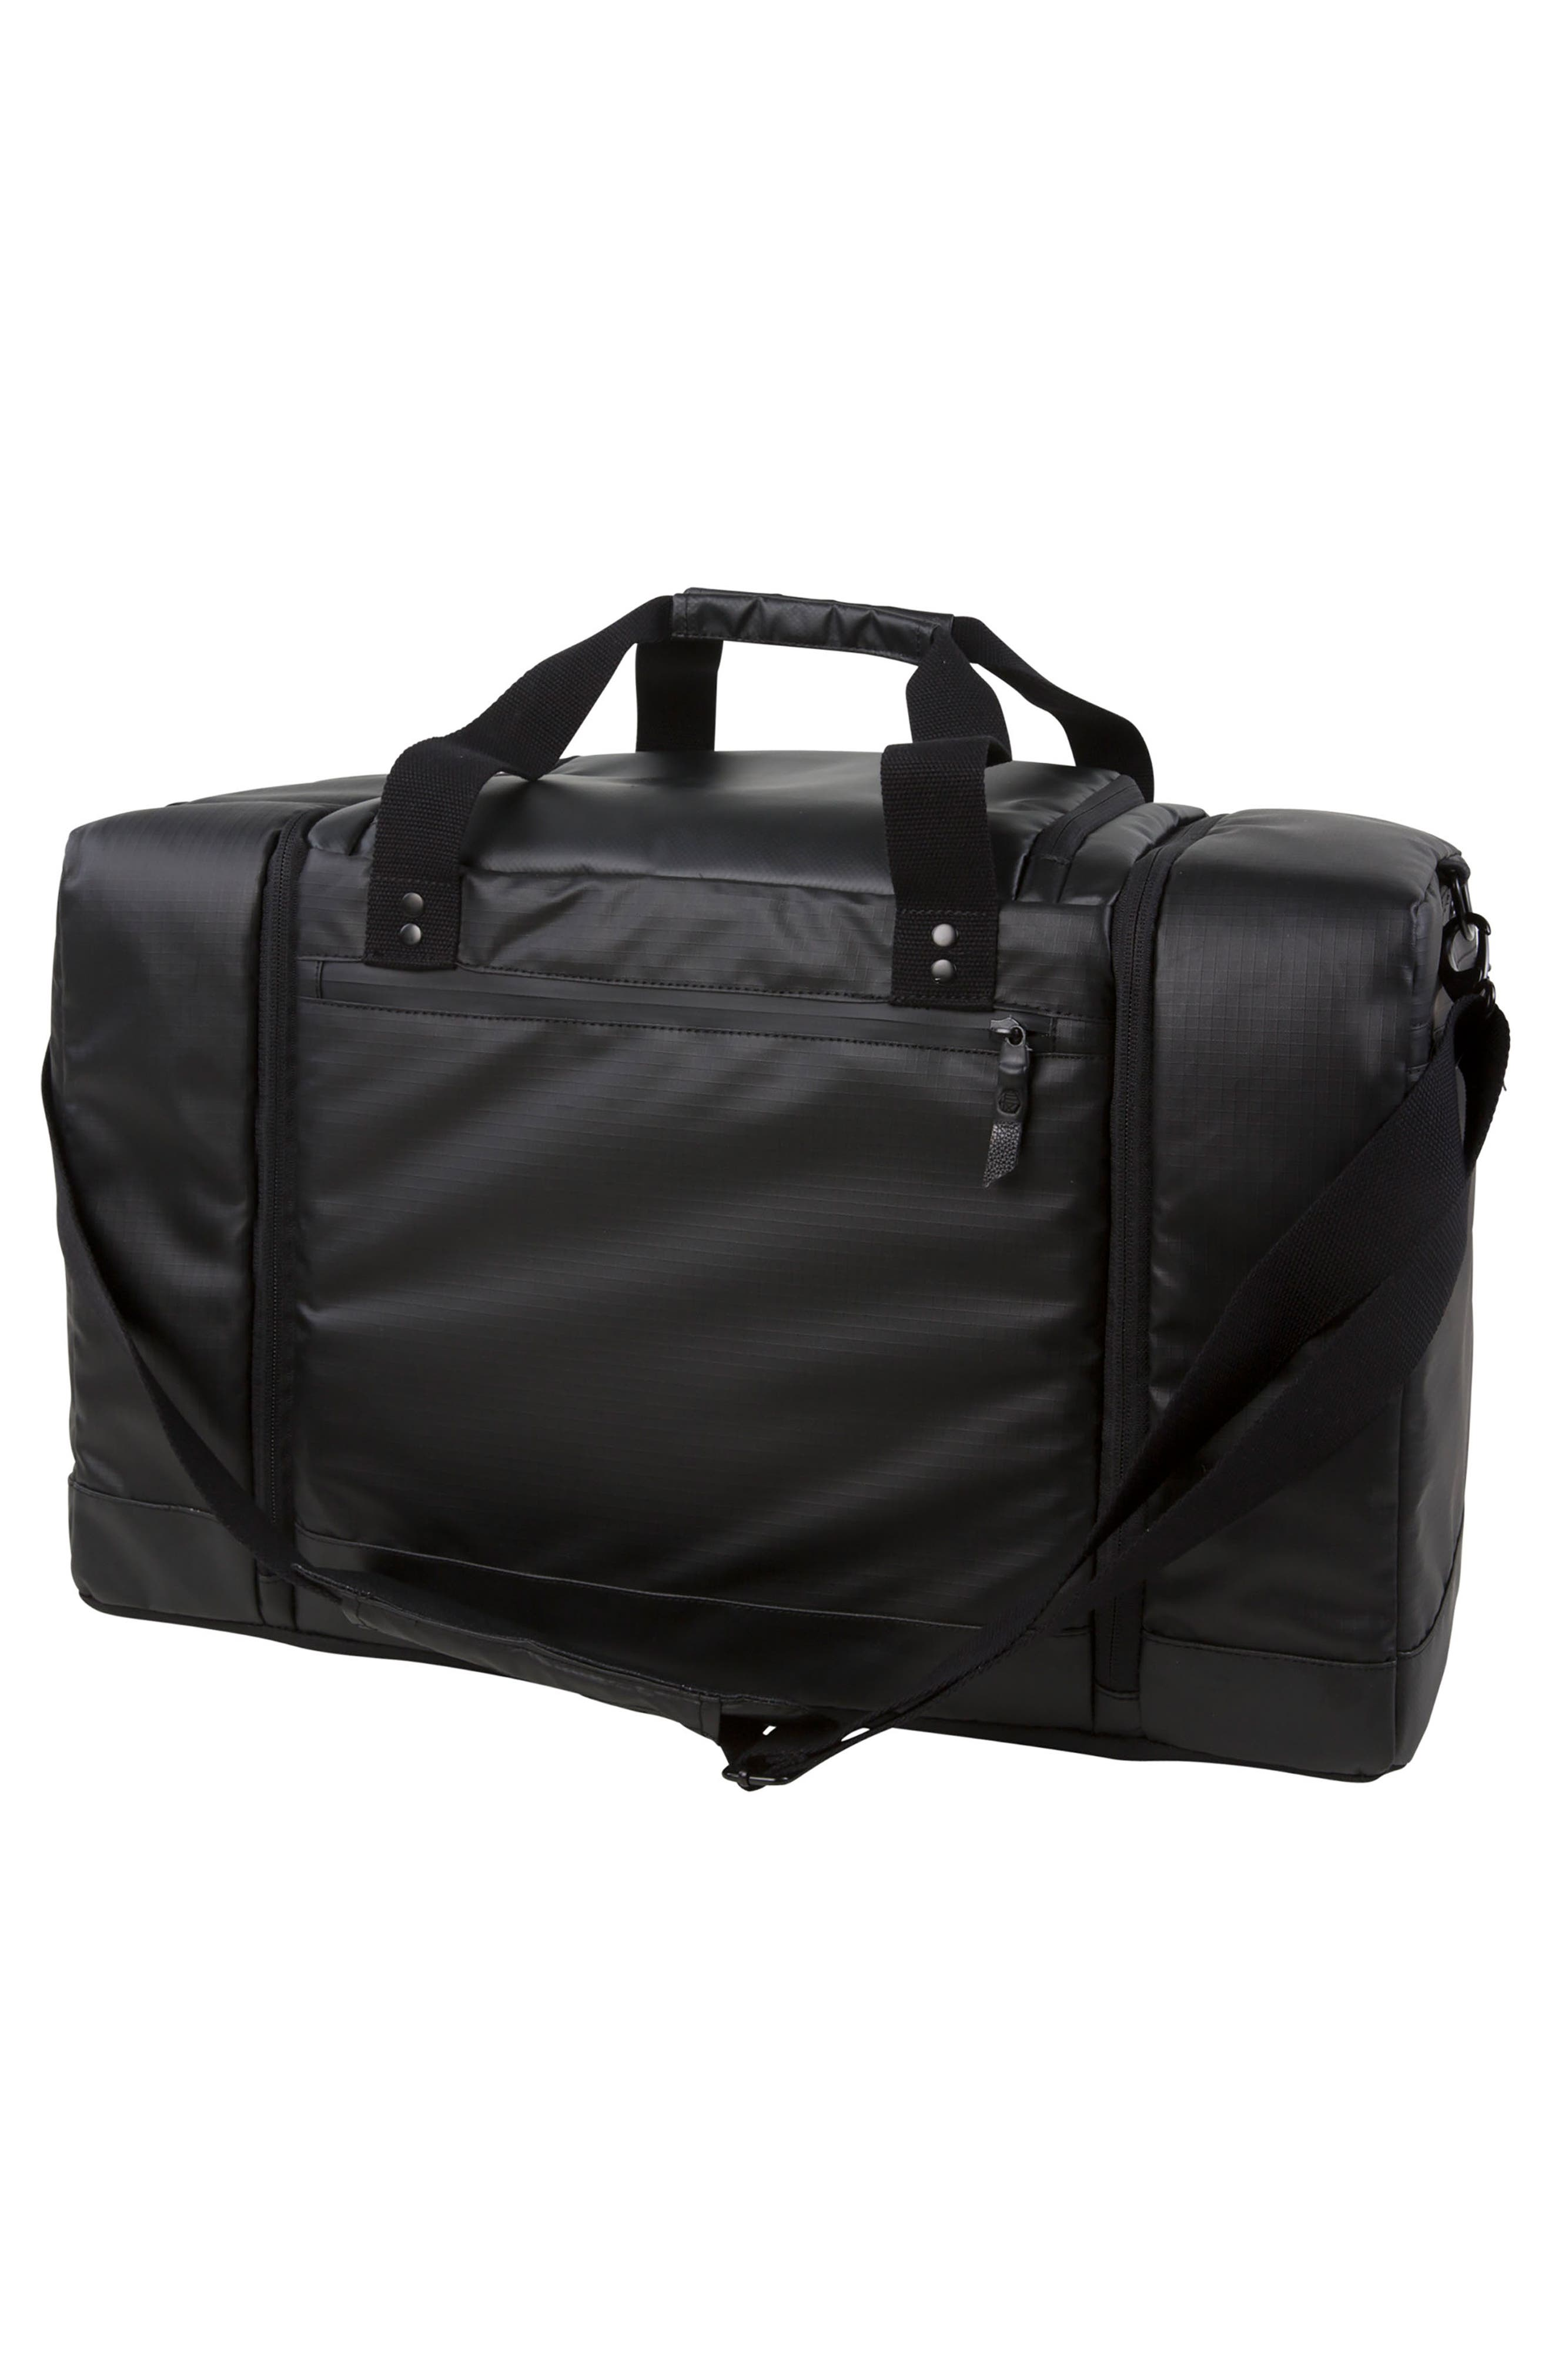 'Calibre' Sneaker Duffel Bag,                             Alternate thumbnail 2, color,                             003